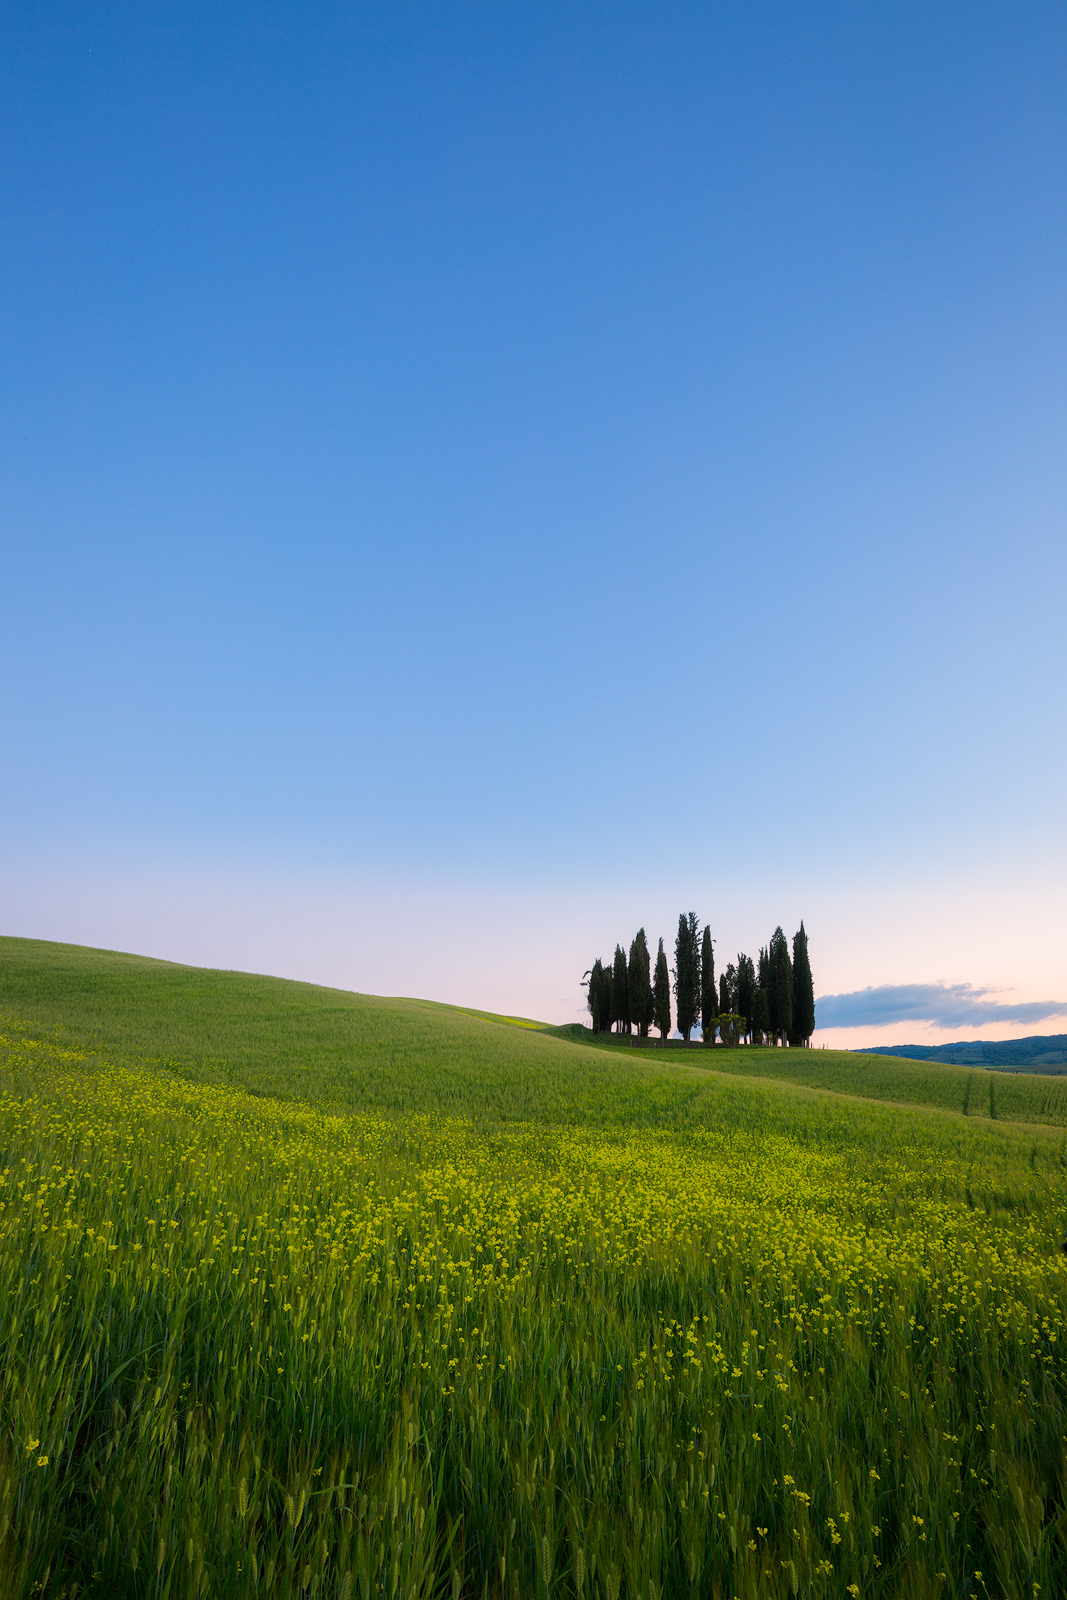 May, Spring, cyprus, europe, evening, hills, italy, landscape, rolling, san quirico d'orcia, trees, tuscany, twilight, vertical, wheat fields, photo